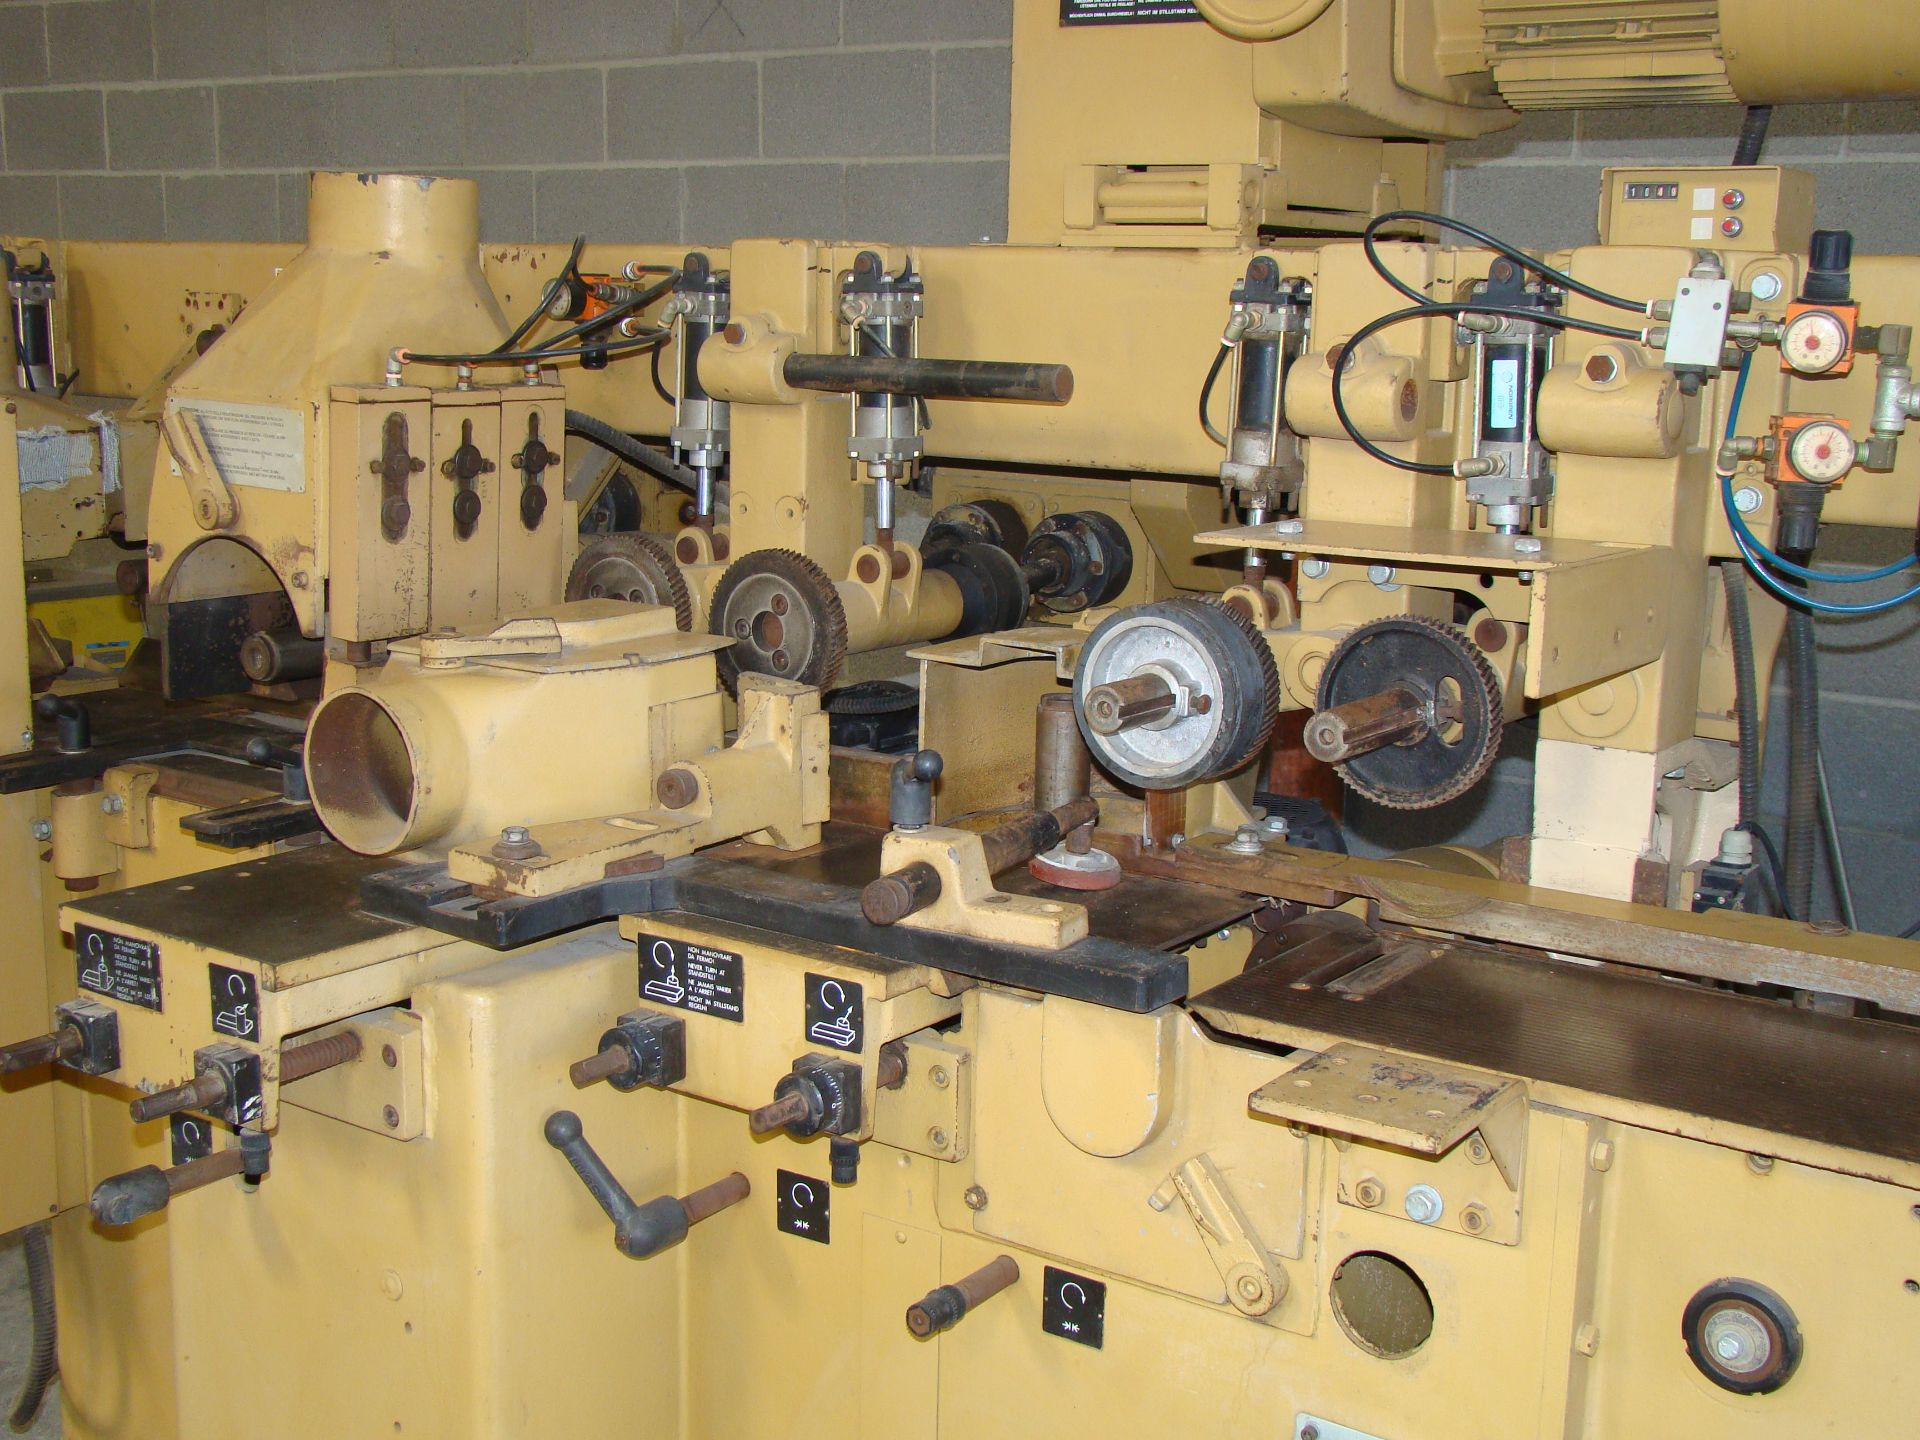 "SCMi 9"" Wood Moulder, Model: P230 5 Head 6.6HP 220/440 Volts 3Phase - Image 2 of 14"